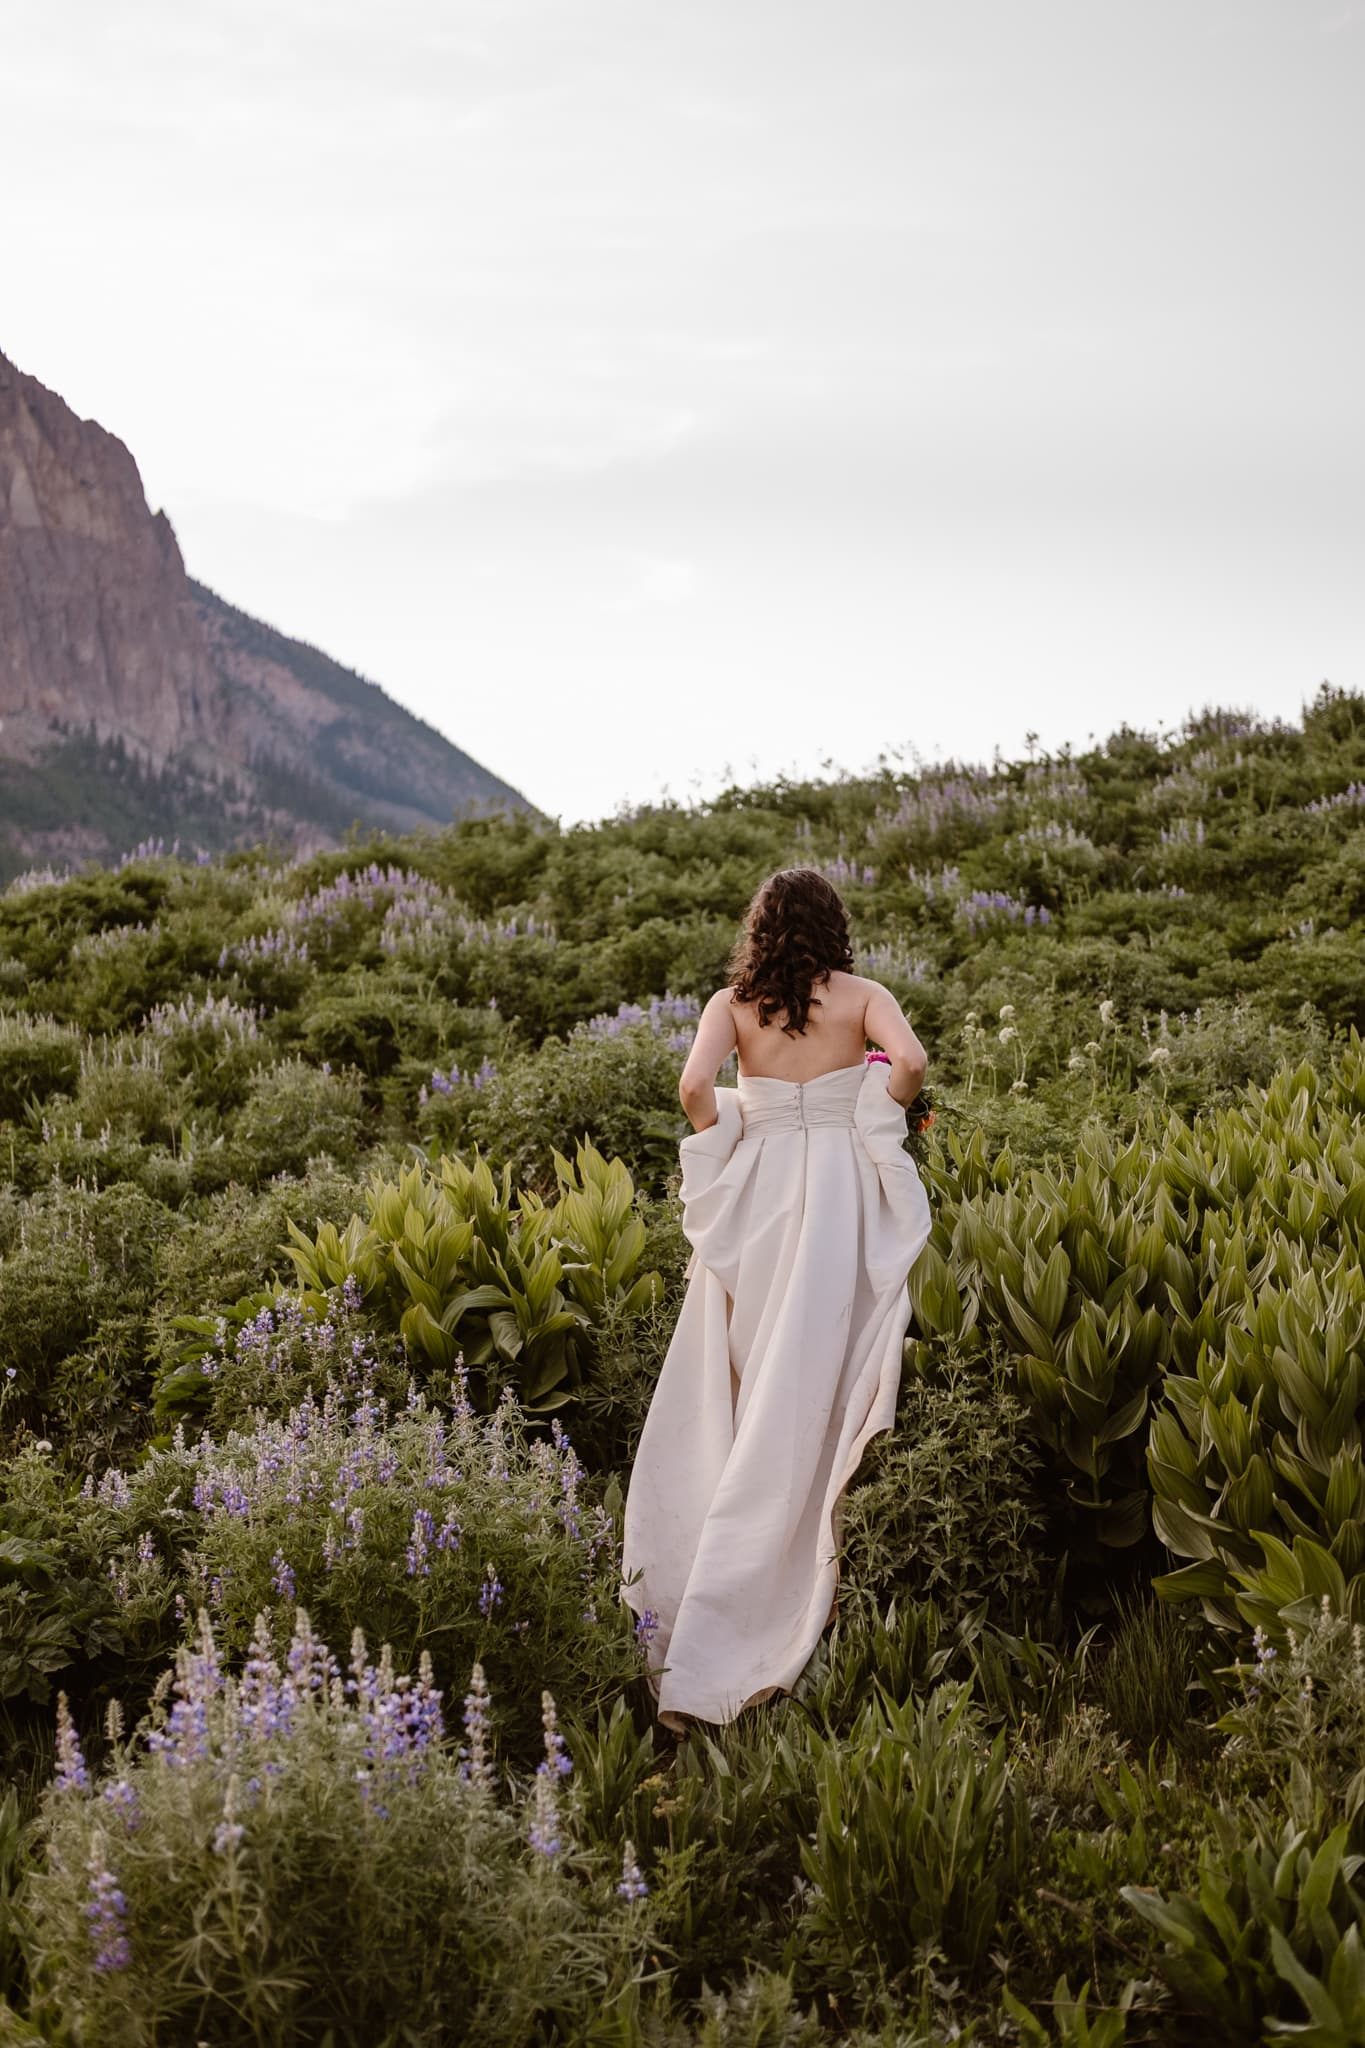 Crested Butte elopement photographer, Colorado adventure wedding photographer, bride hiking through wildflowers